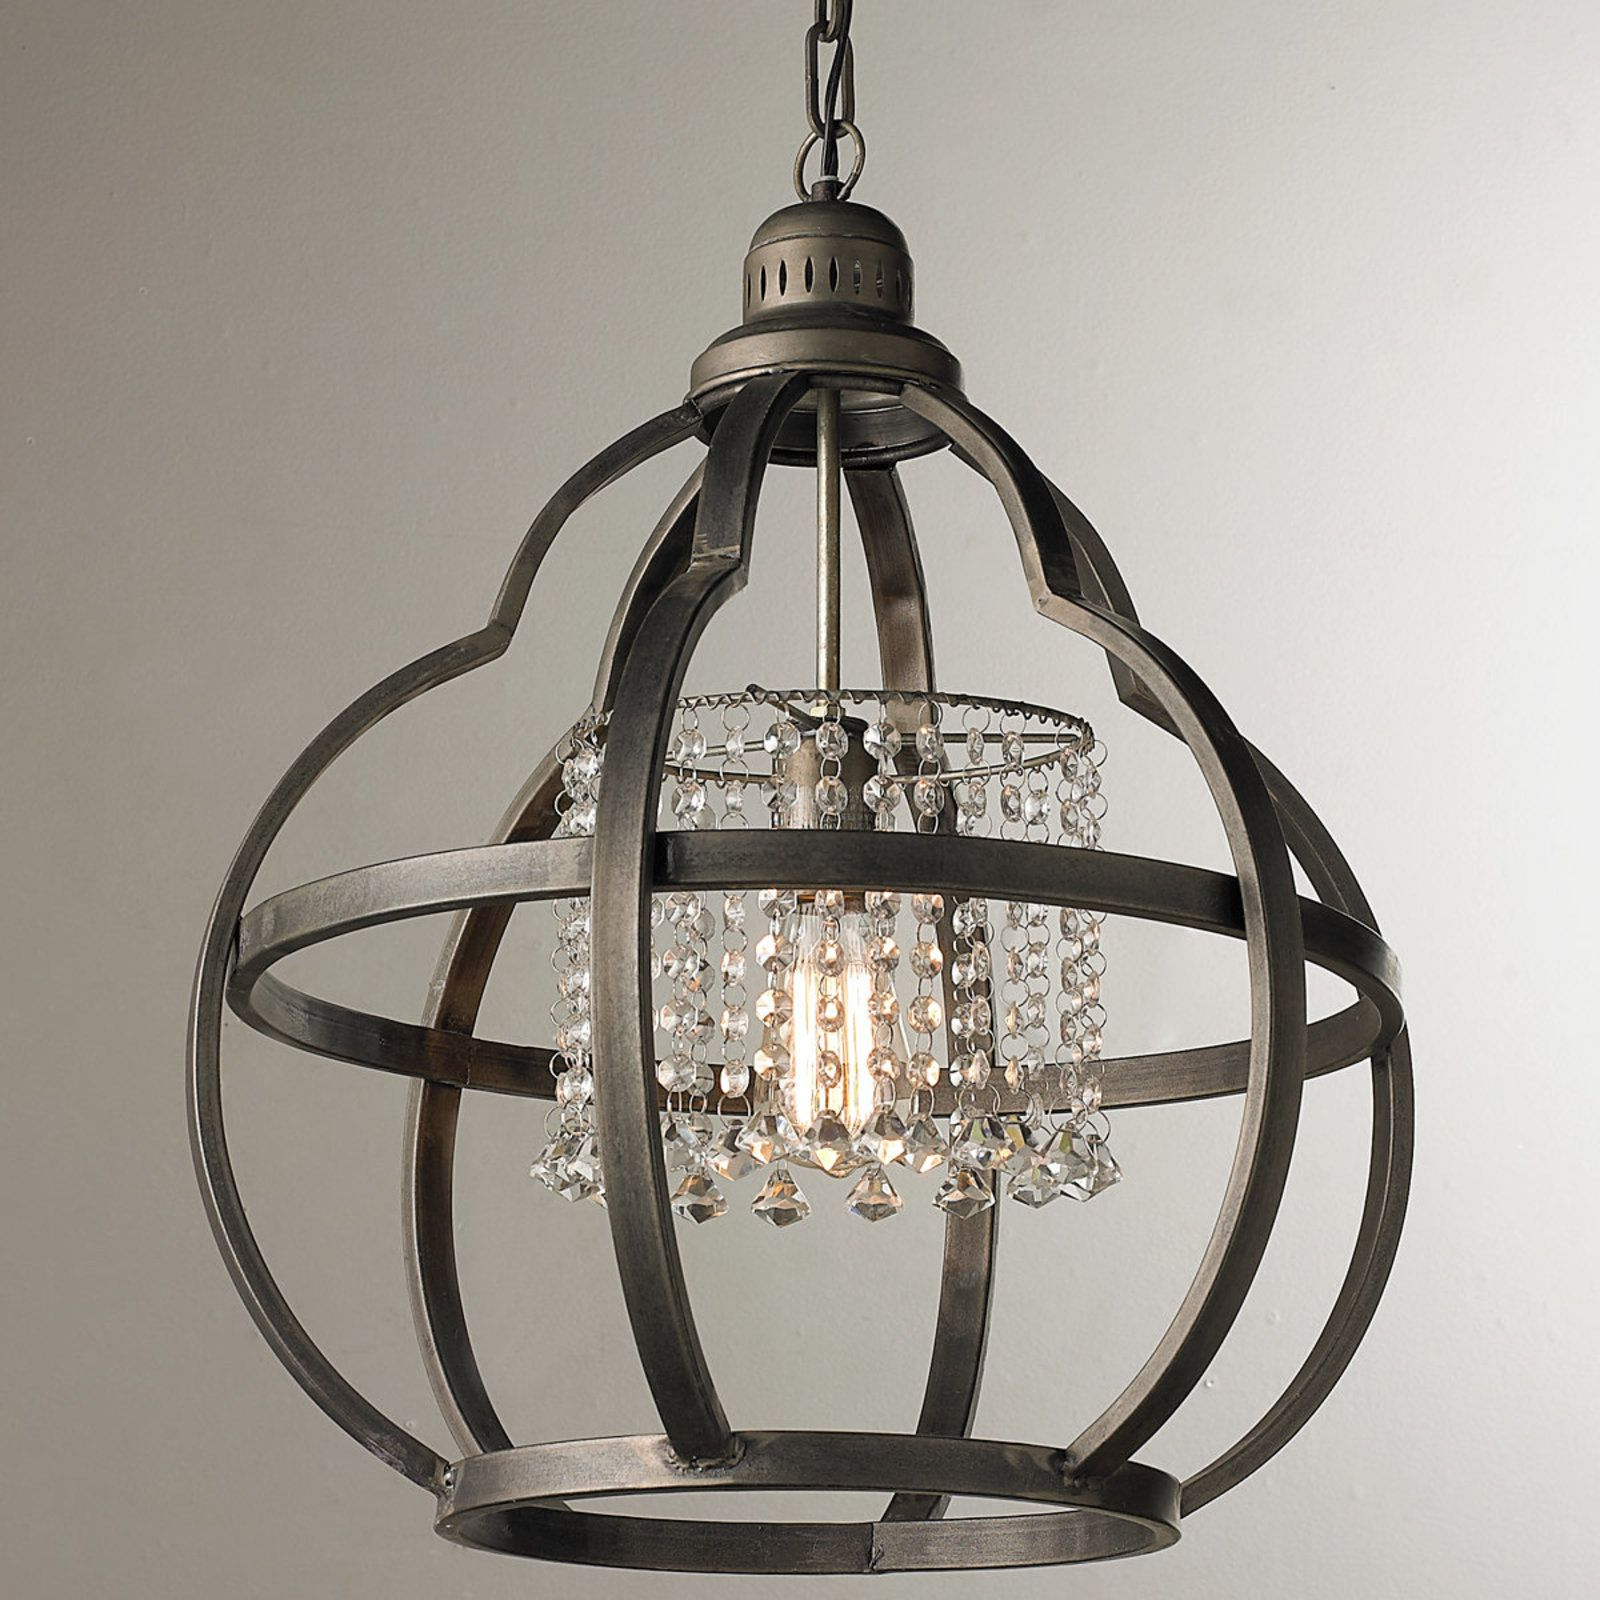 Home Decorating intended for Alden 3-Light Single Globe Pendants